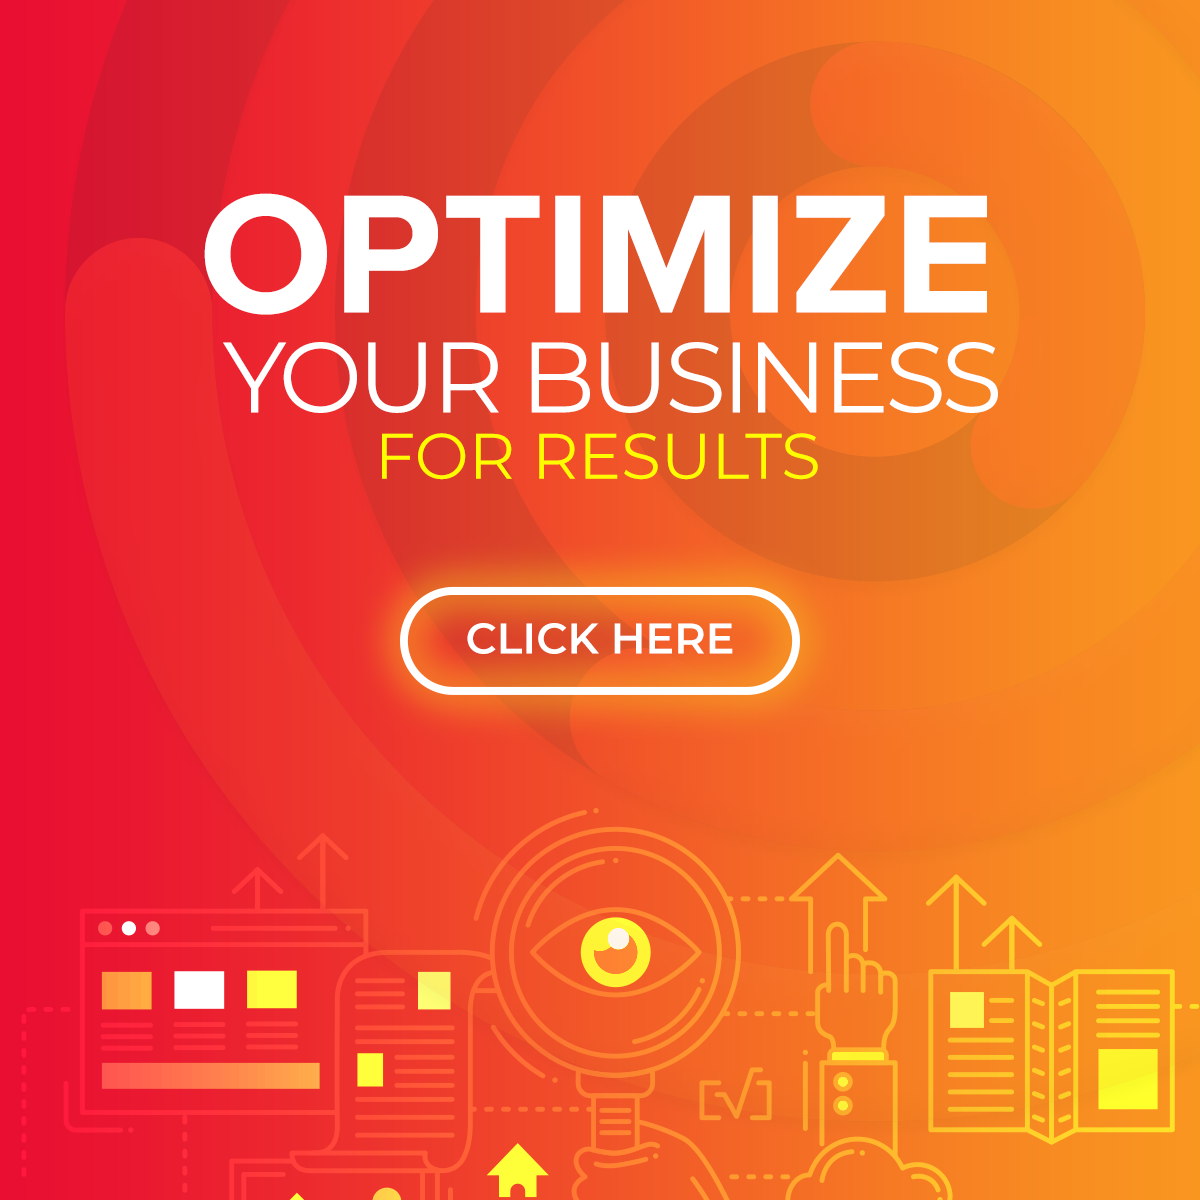 Optimize Your Business For Results